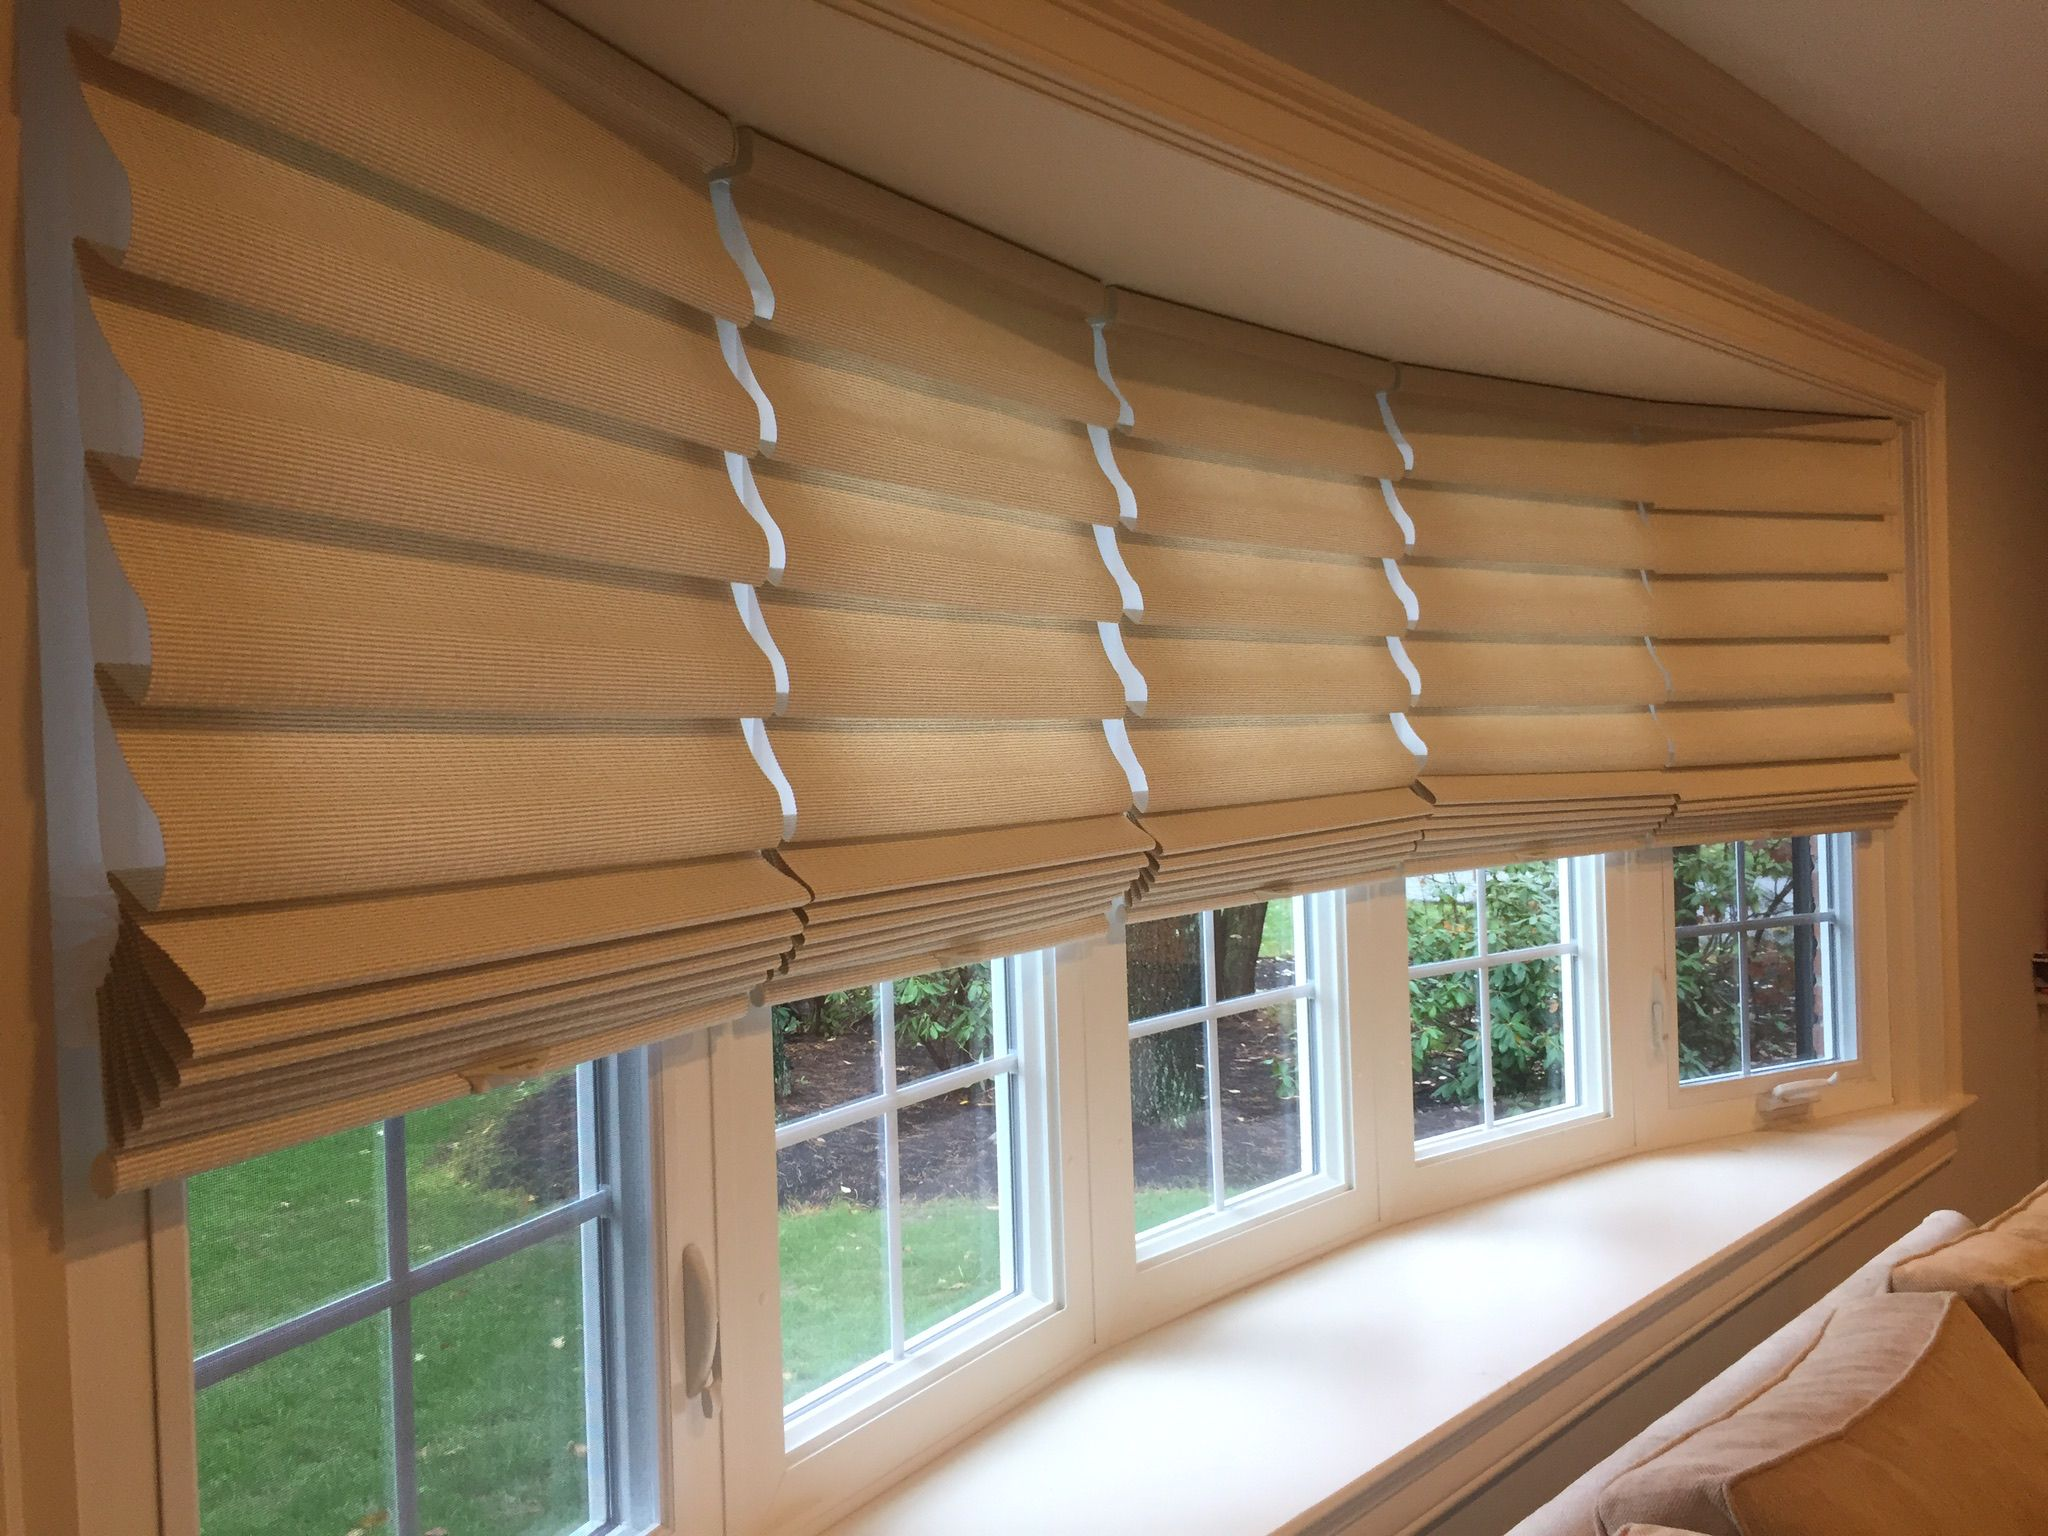 Close Up View Of Hunter Douglas Vignette Window Shades Installed In Medfield Ma Available In Various Fold Size Custom Blinds Window Treatments Window Shades